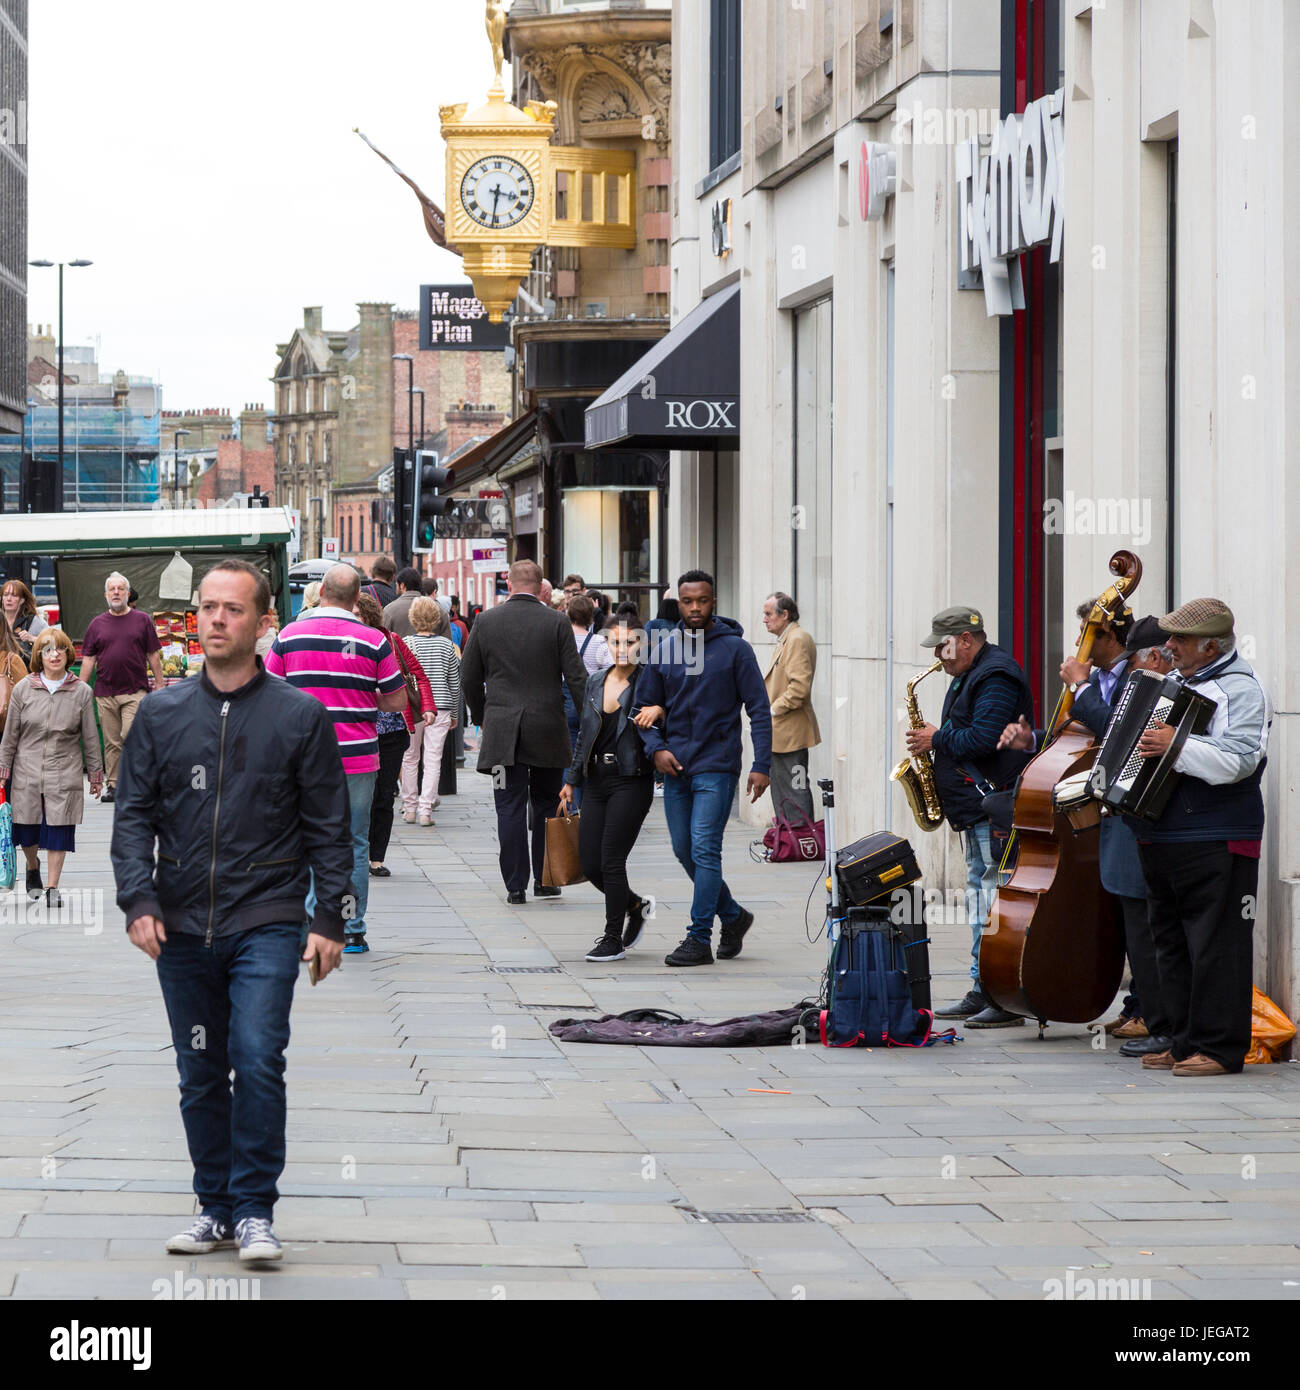 Newcastle-upon-Tyne, England, UK.  Northumberland Street Scene with Musicians and Pedestrians. - Stock Image